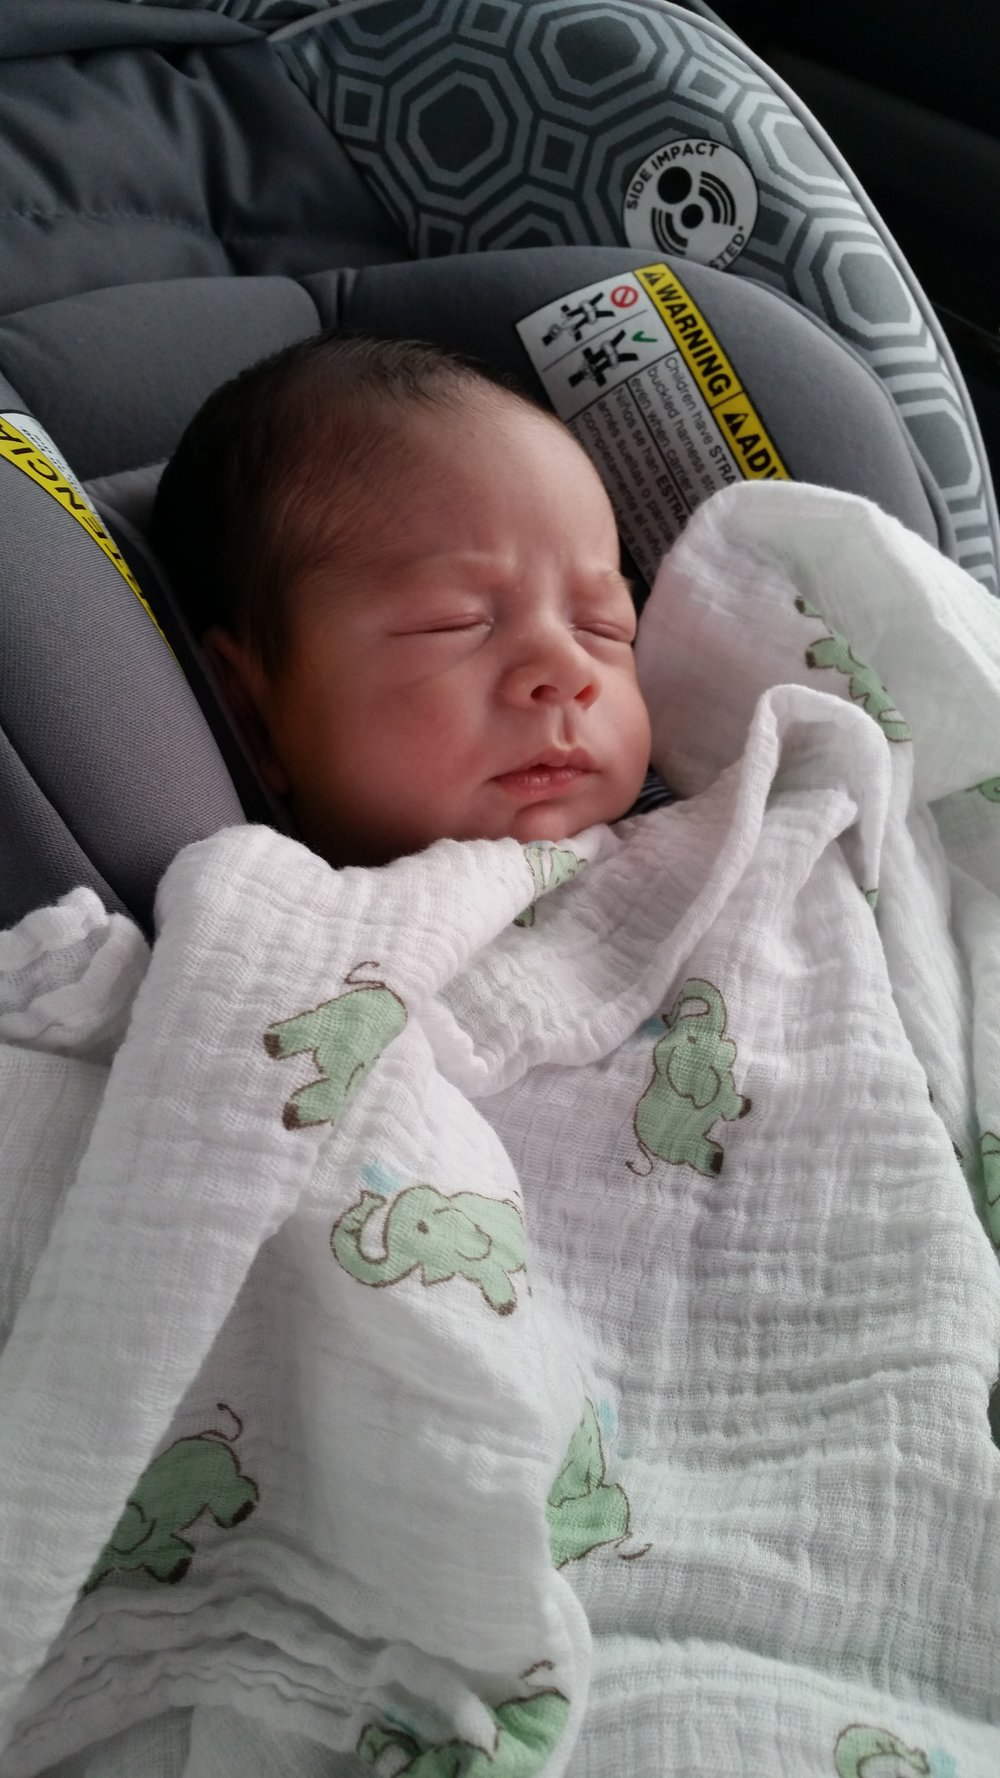 Ezra on his way home from his first doctor's appointment.